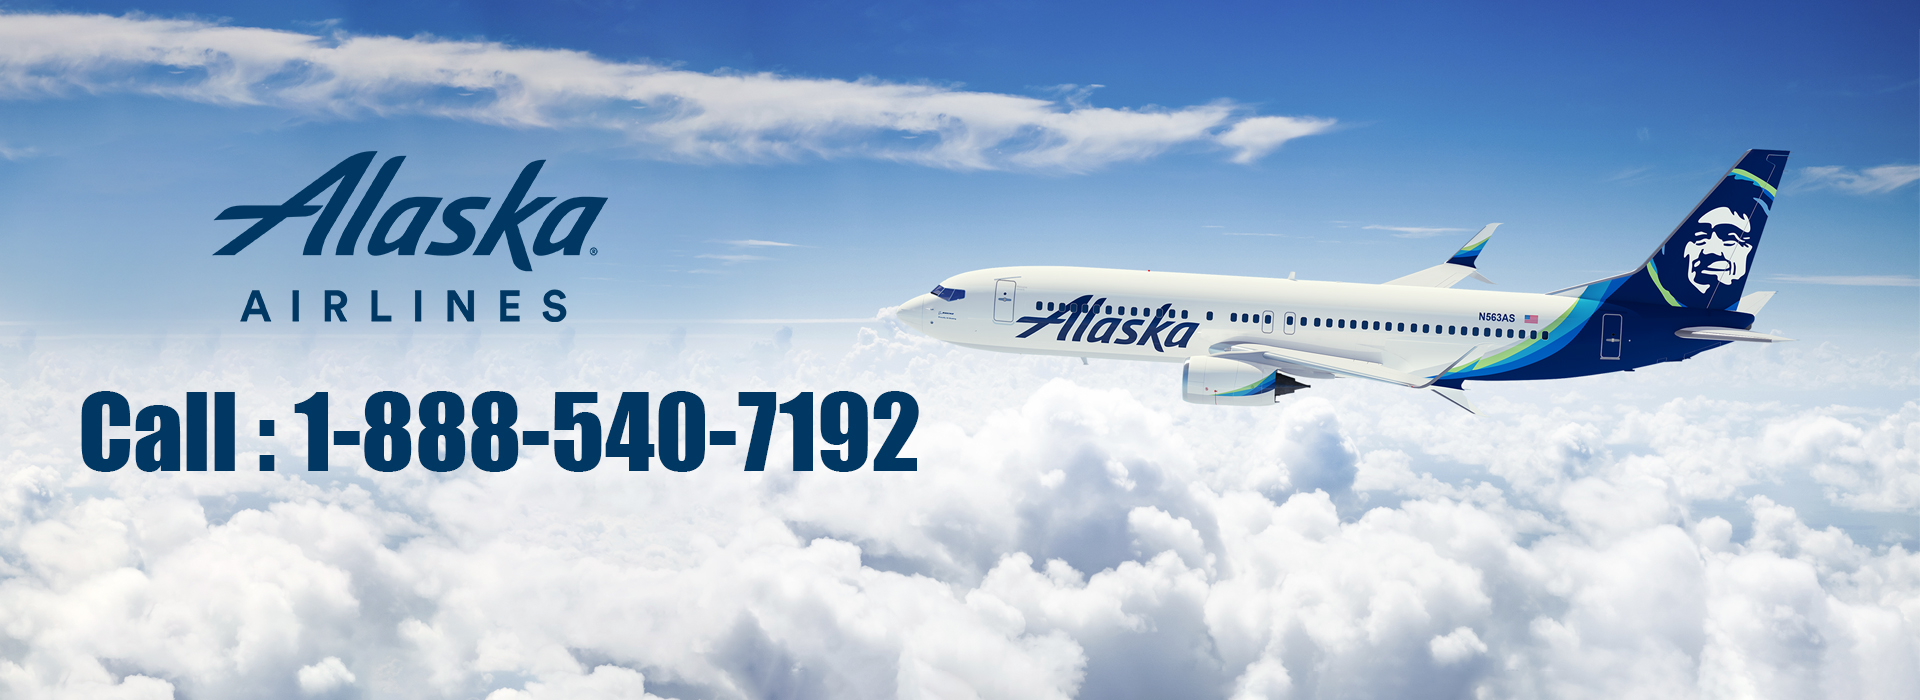 Alaska Airline Phone Number 1-888-540-7192